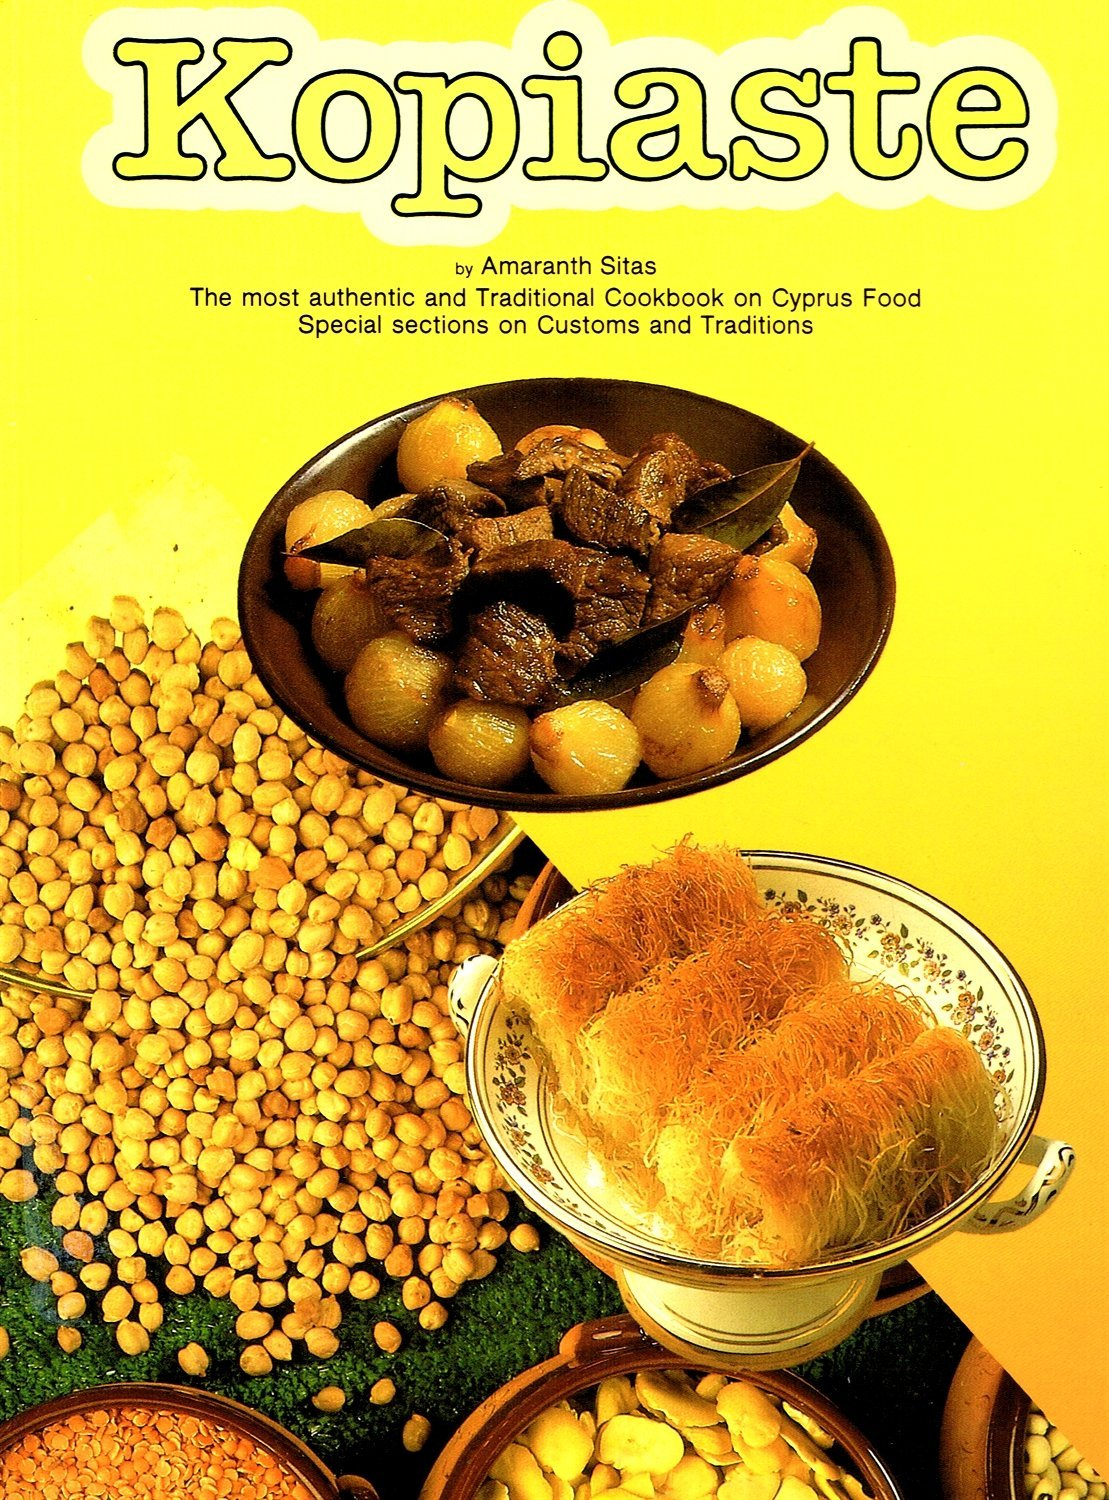 Traditional greek cooking from cyprus and beyond amazon kopiaste most traditional cook book on cyprus food special sections on customs and tradition forumfinder Choice Image